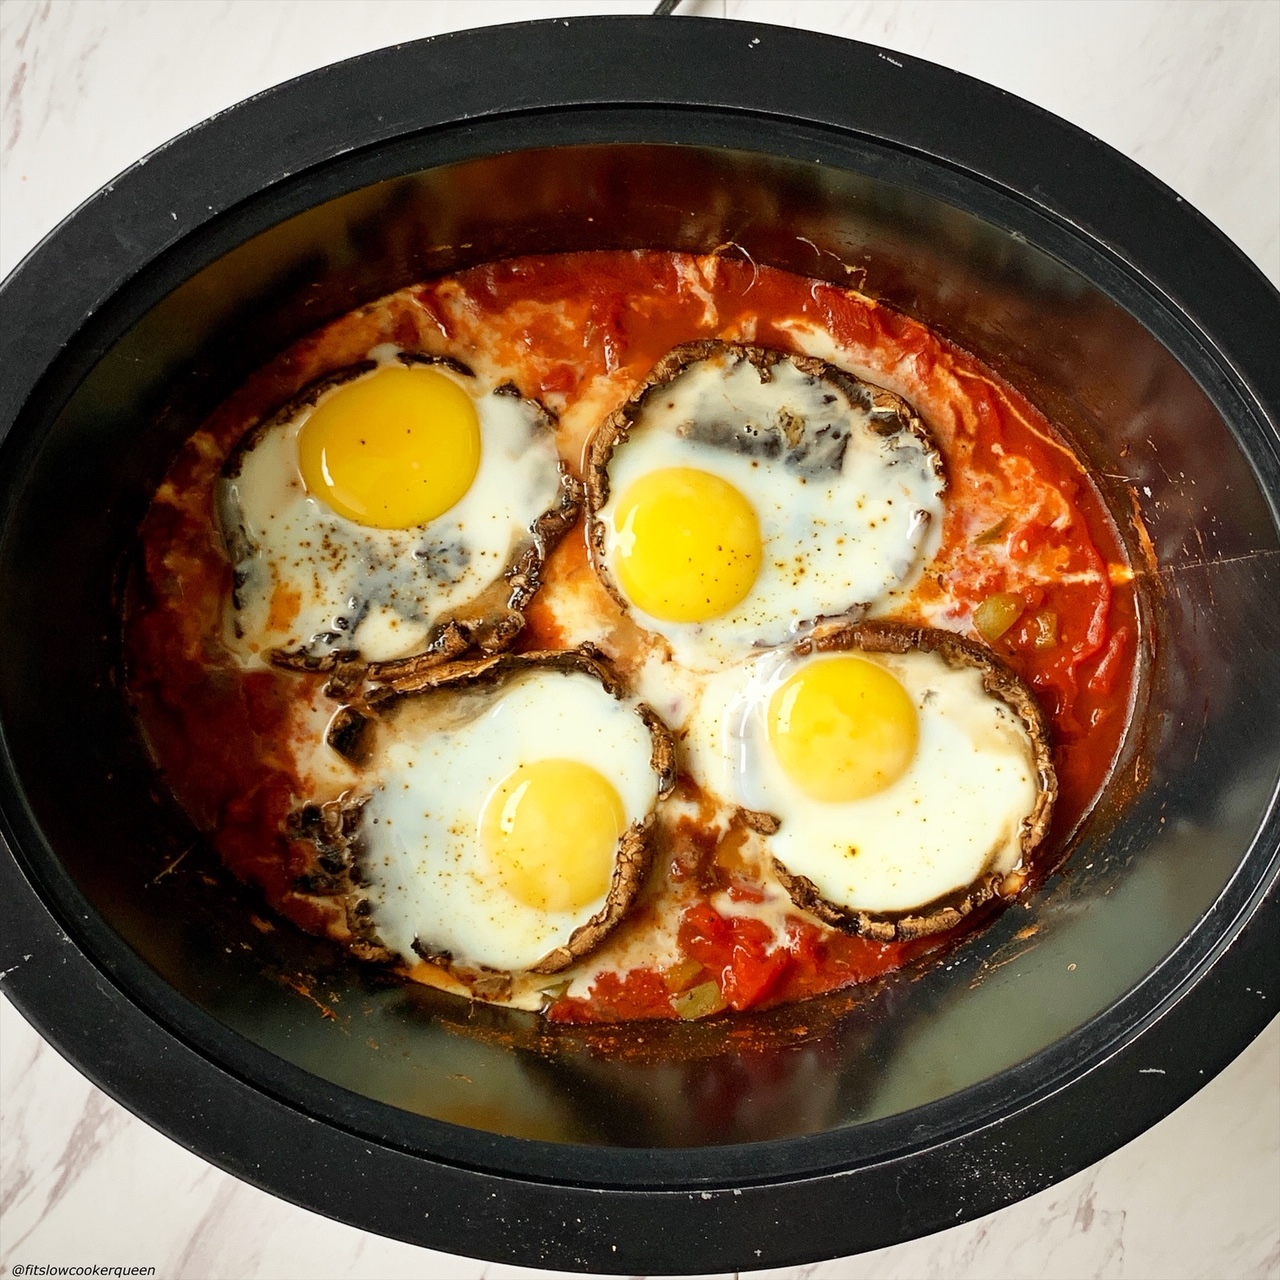 cooked eggs added on top of cooked portobello mushrooms in the slow cooker